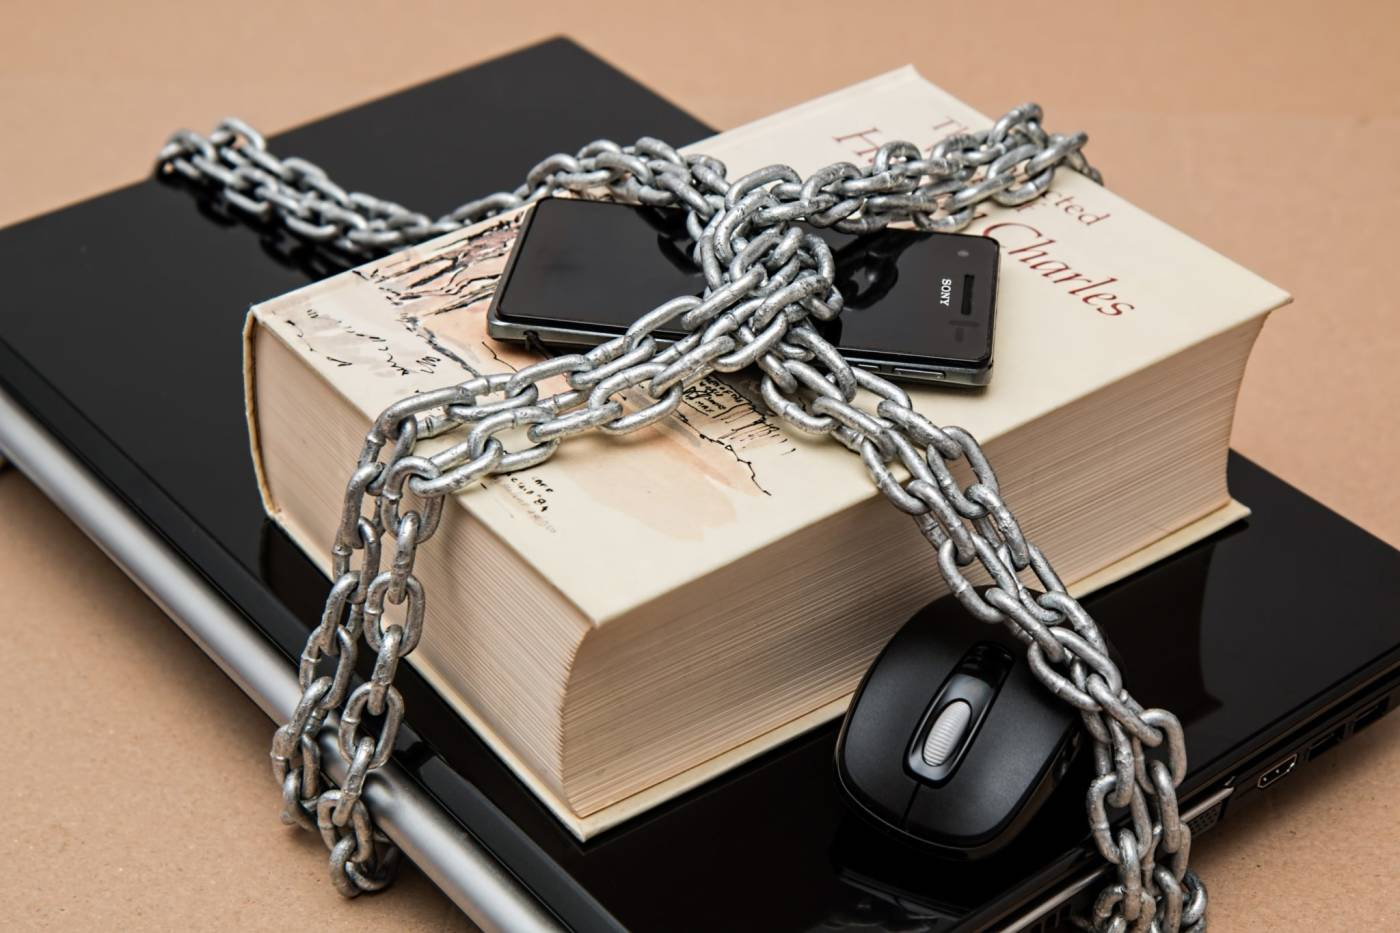 Phone, book, laptop, mouse chained together